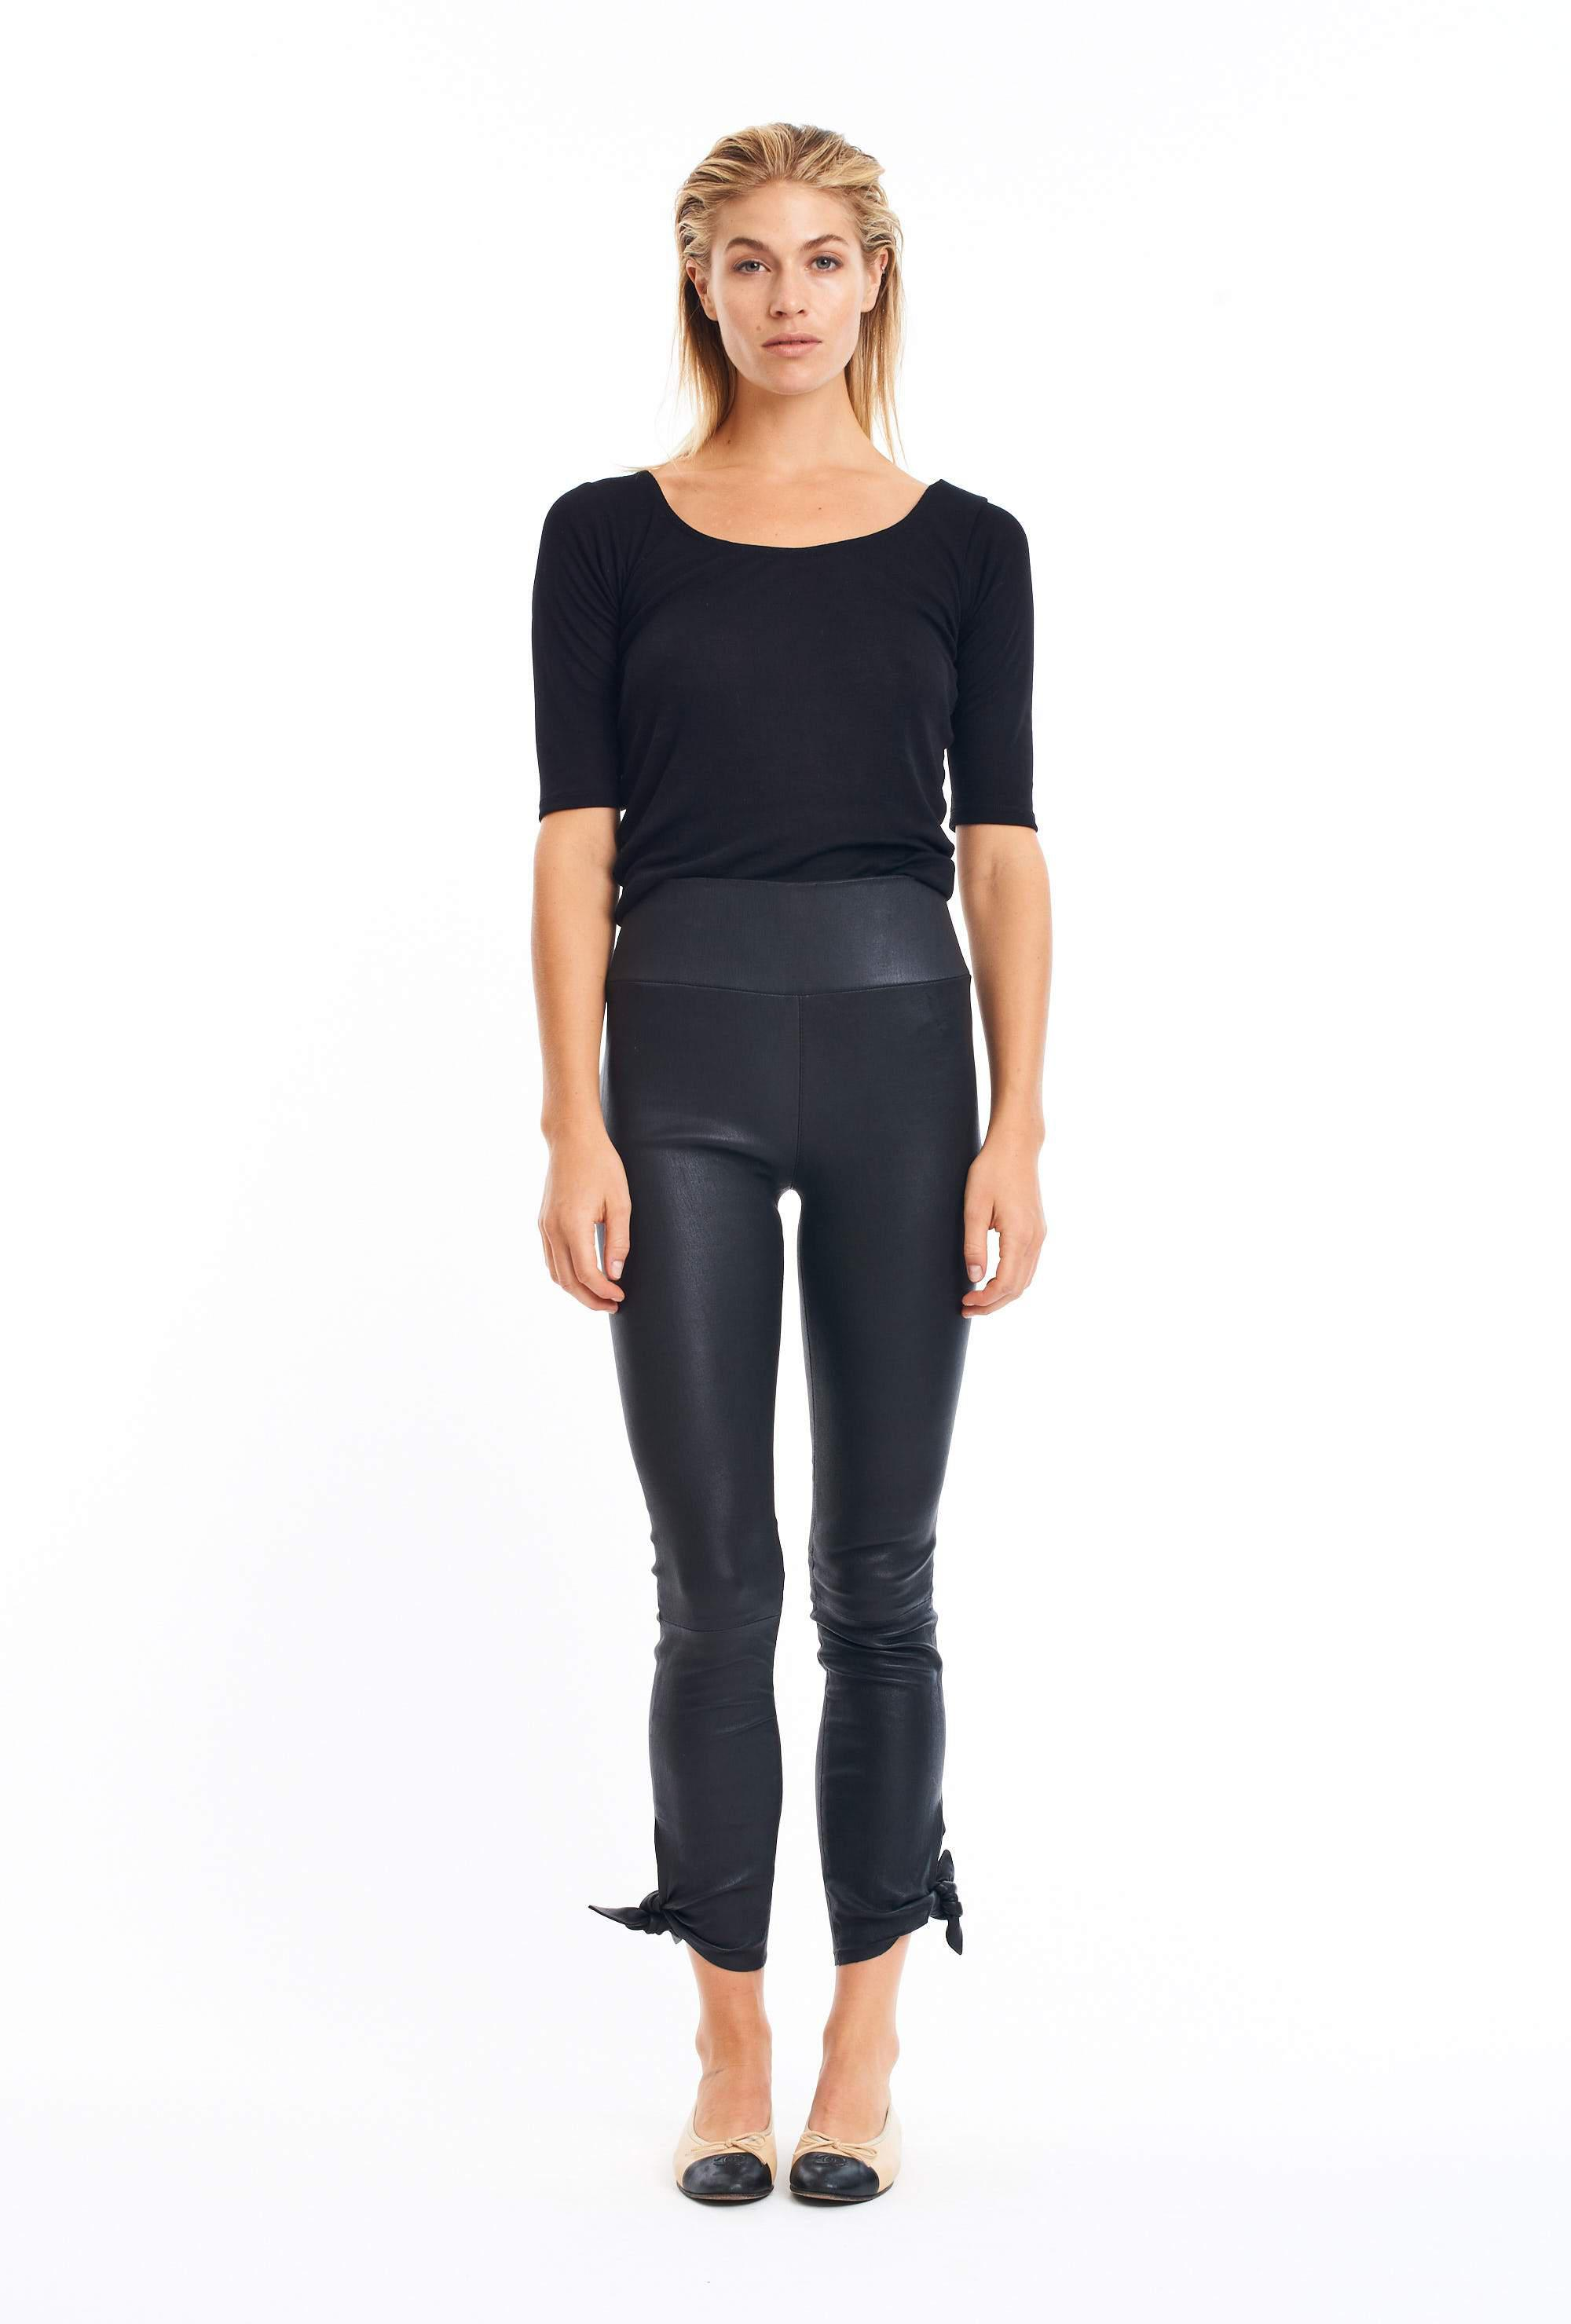 Black Ankle Leather Legging w Bow Tie